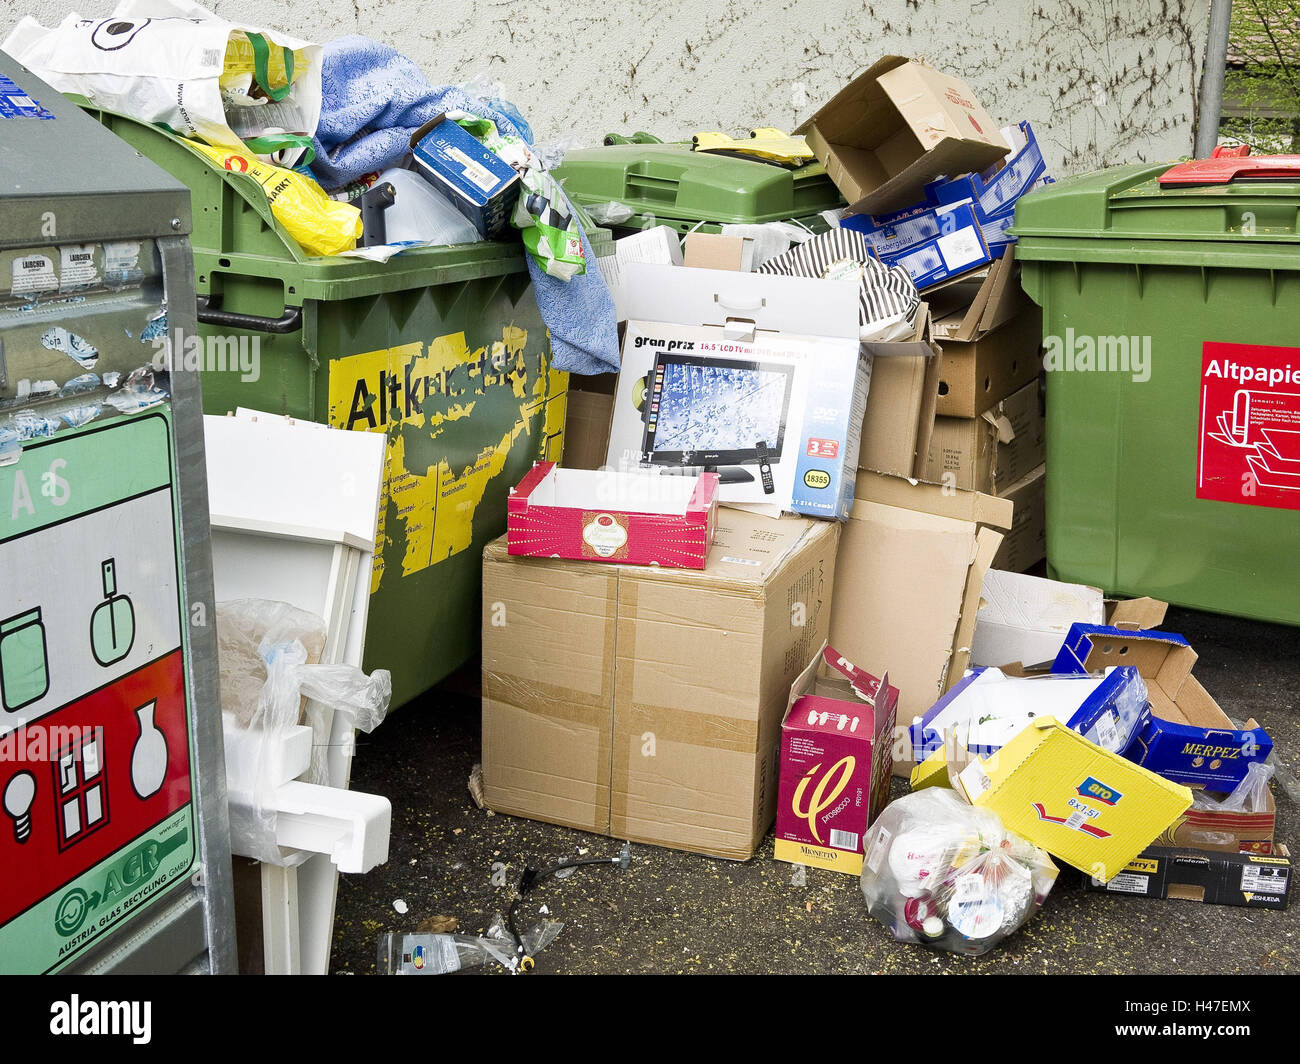 Recycling court, waste paper, mess, waste, Austria, case, Bregenz, container, cardboards, garbage, garbage separation, - Stock Image